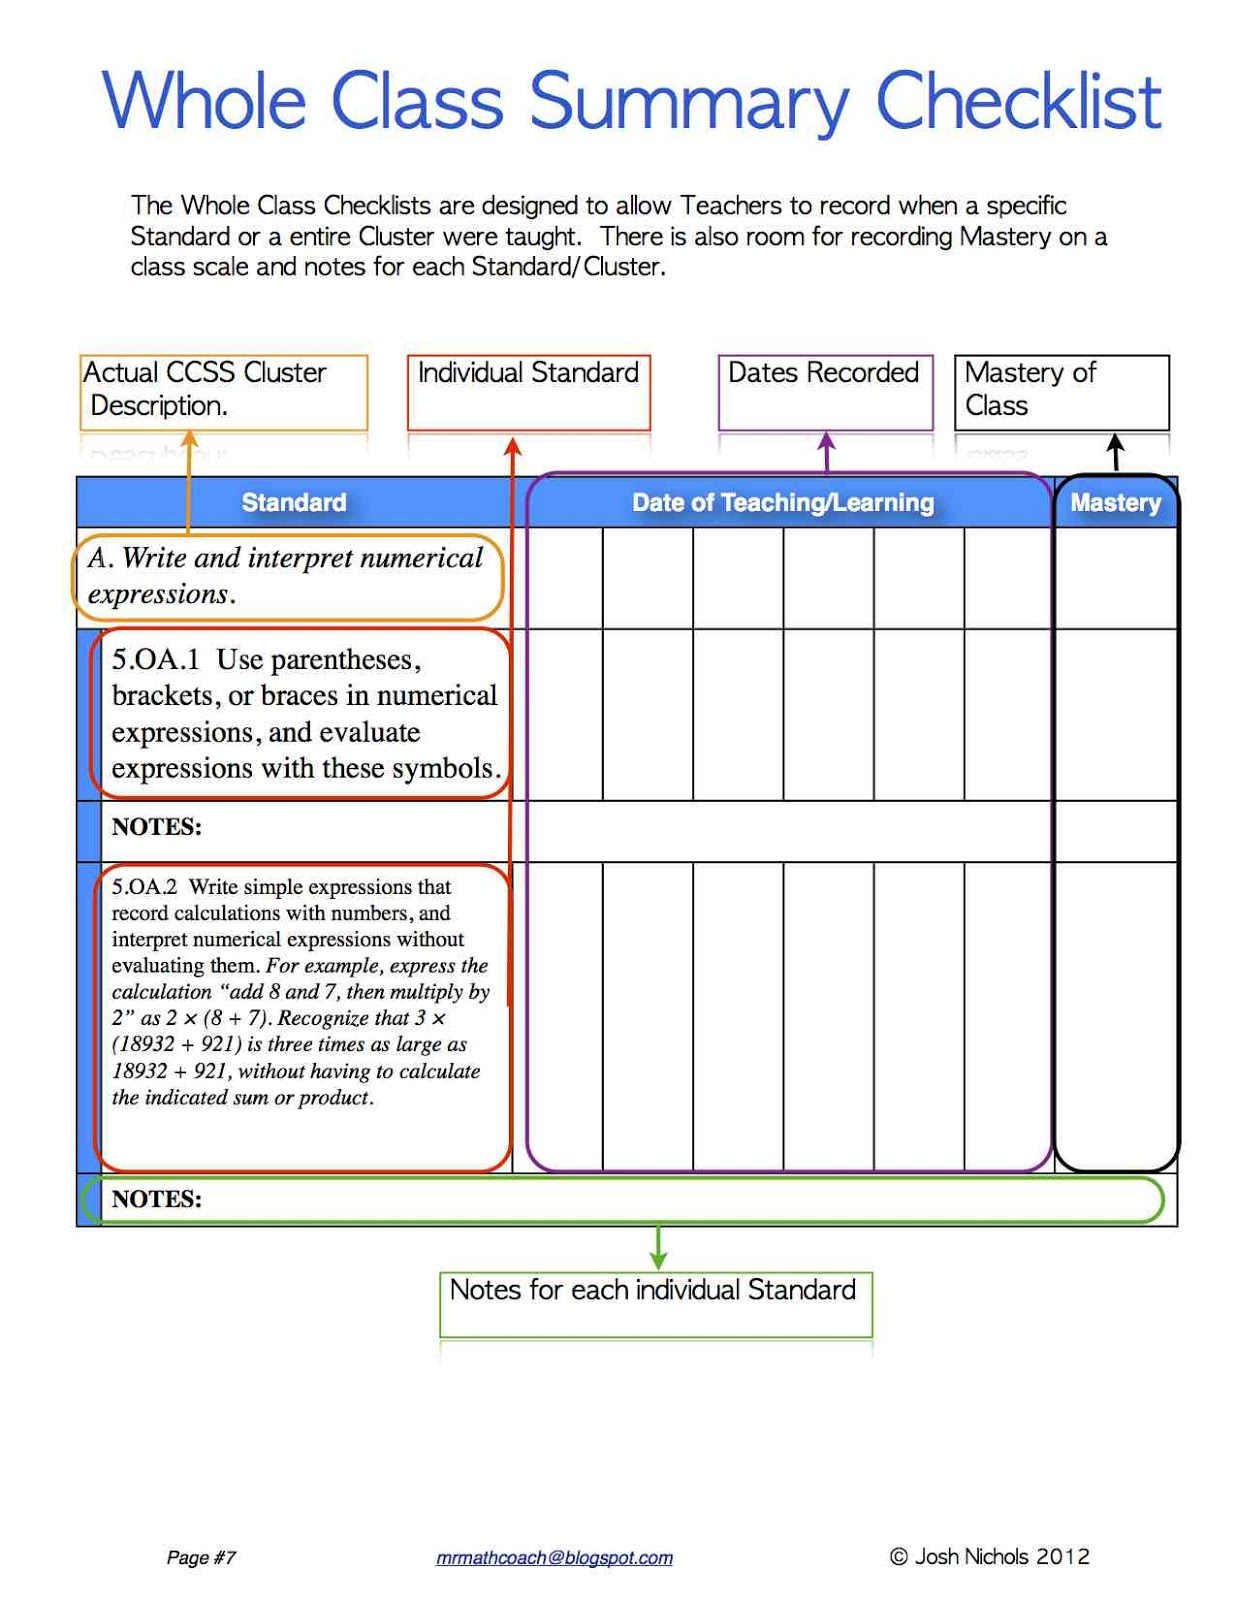 Evaluating expressions worksheet 6th grade